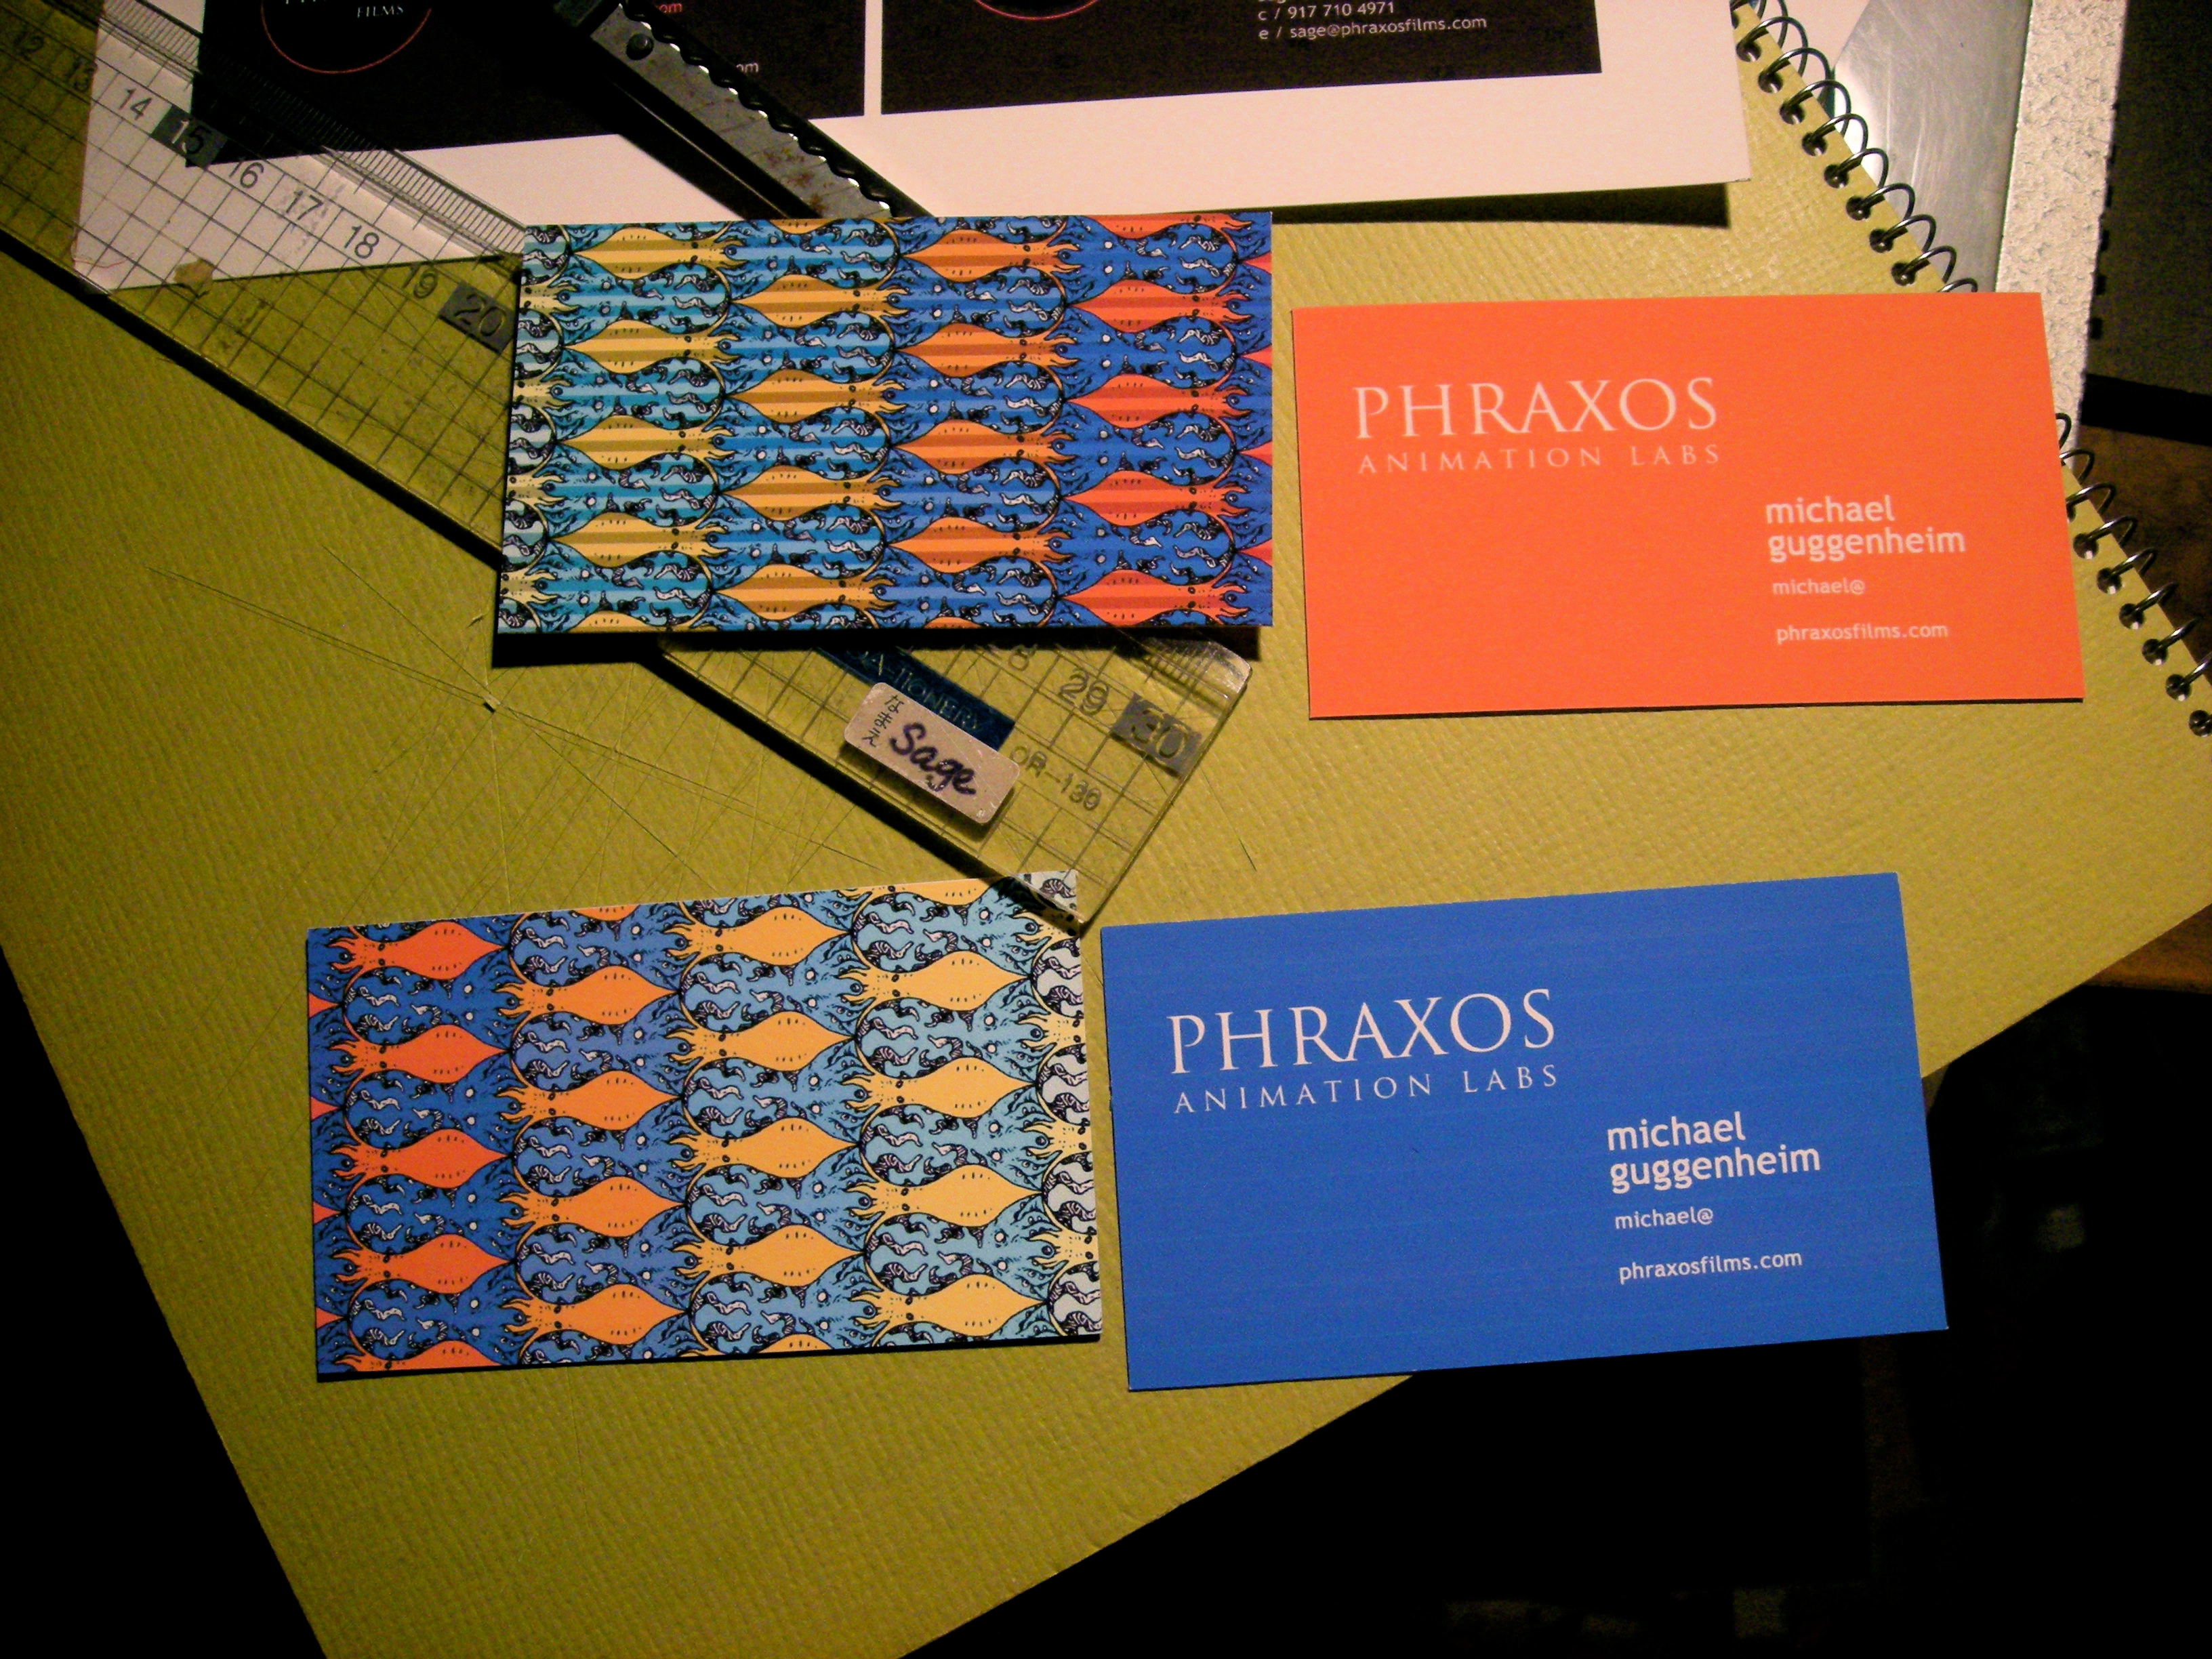 Sage morita phraxos animation labs business cards a business card for phraxos films animation department featuring an escher inspired tessellation of octopi and squid colourmoves